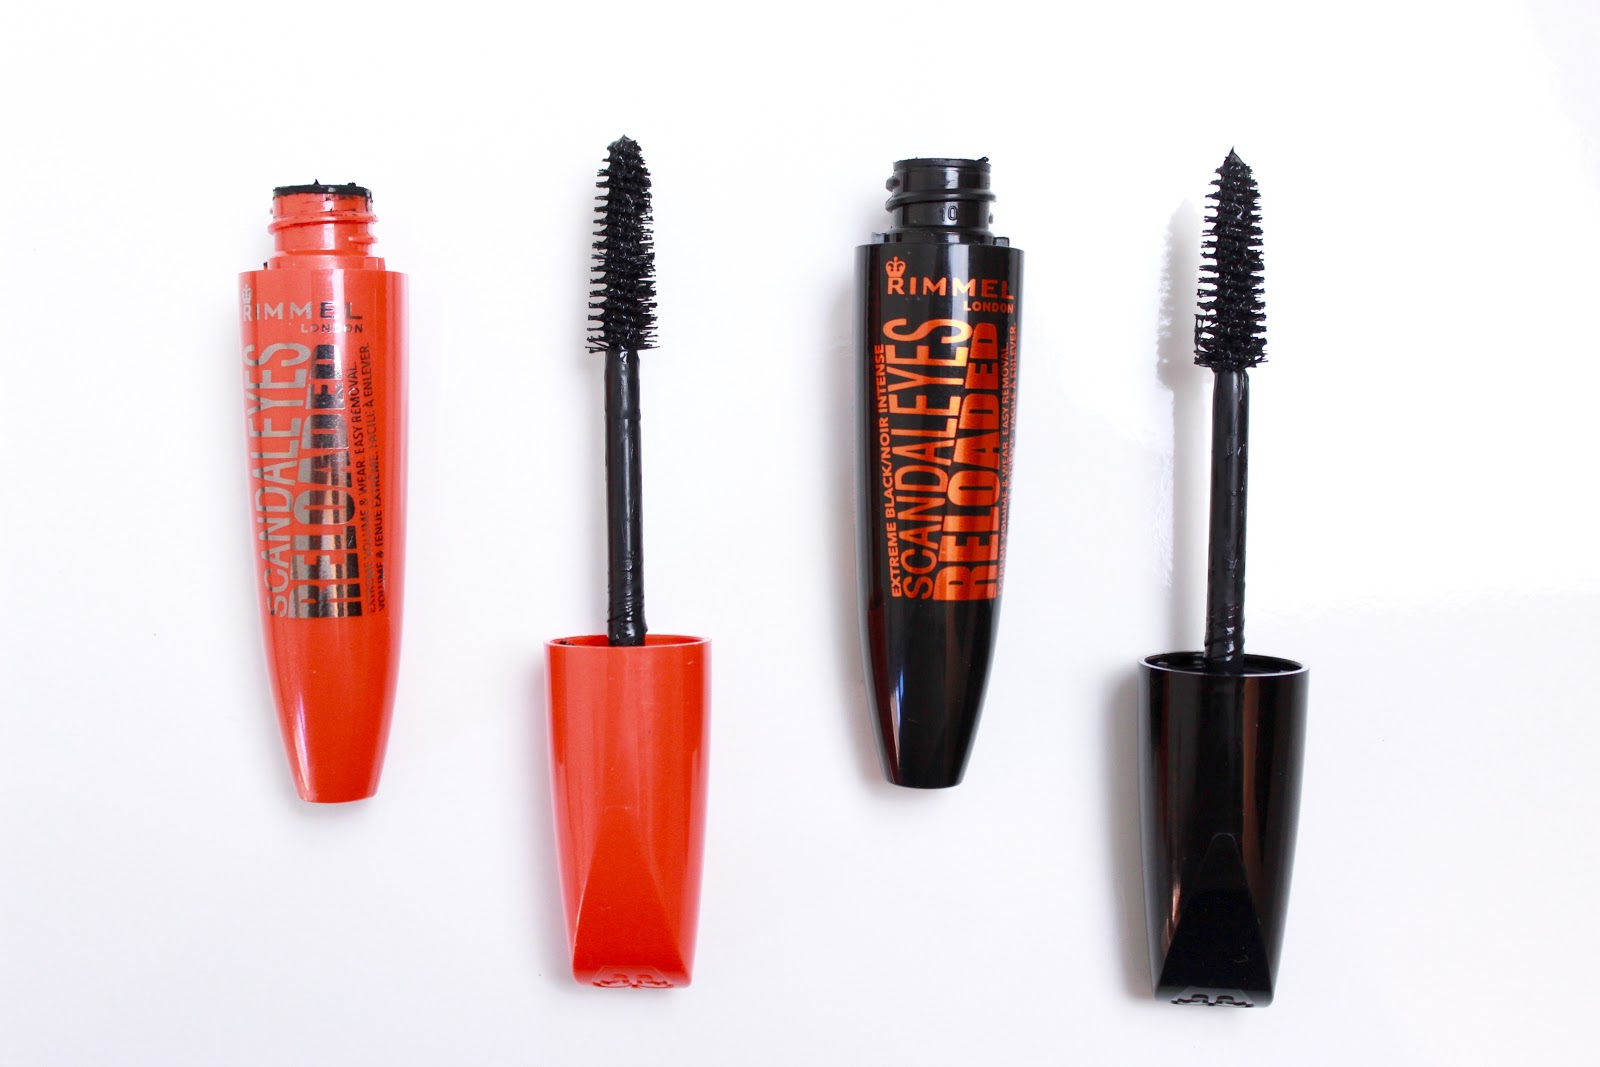 Rimmel Scandaleyes Reloaded Mascara Review